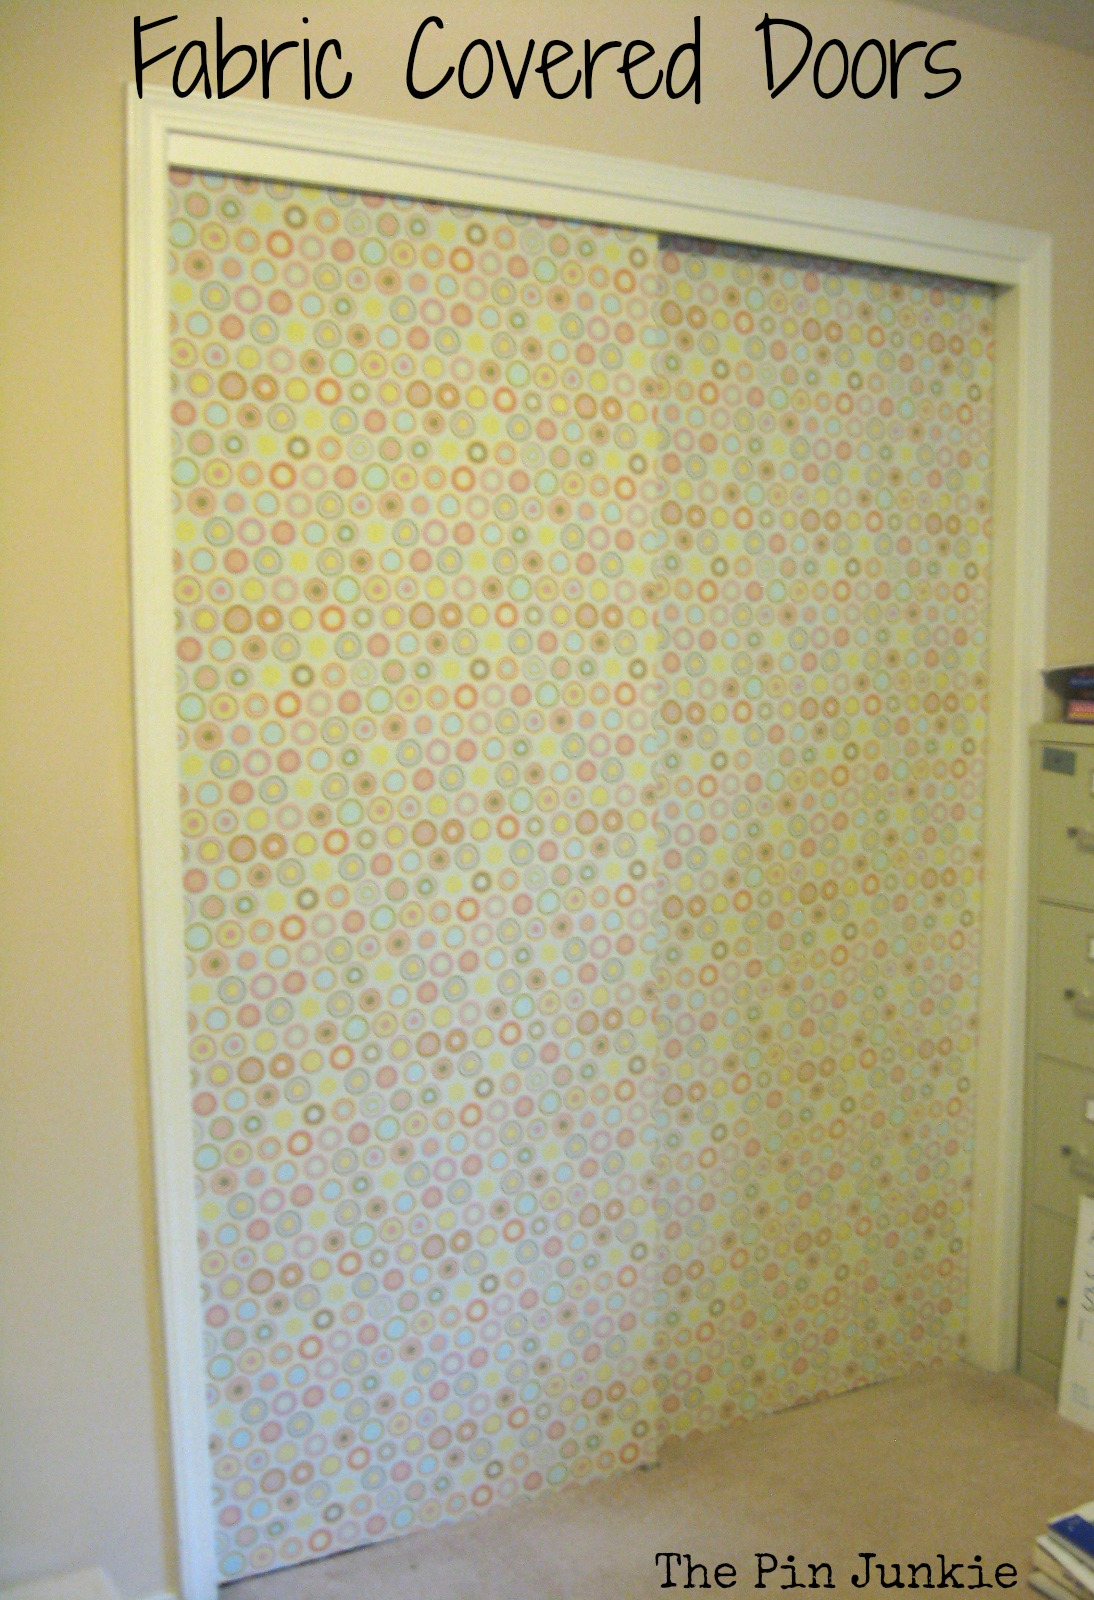 Cover Closet Doors #31 - The Pin Junkie